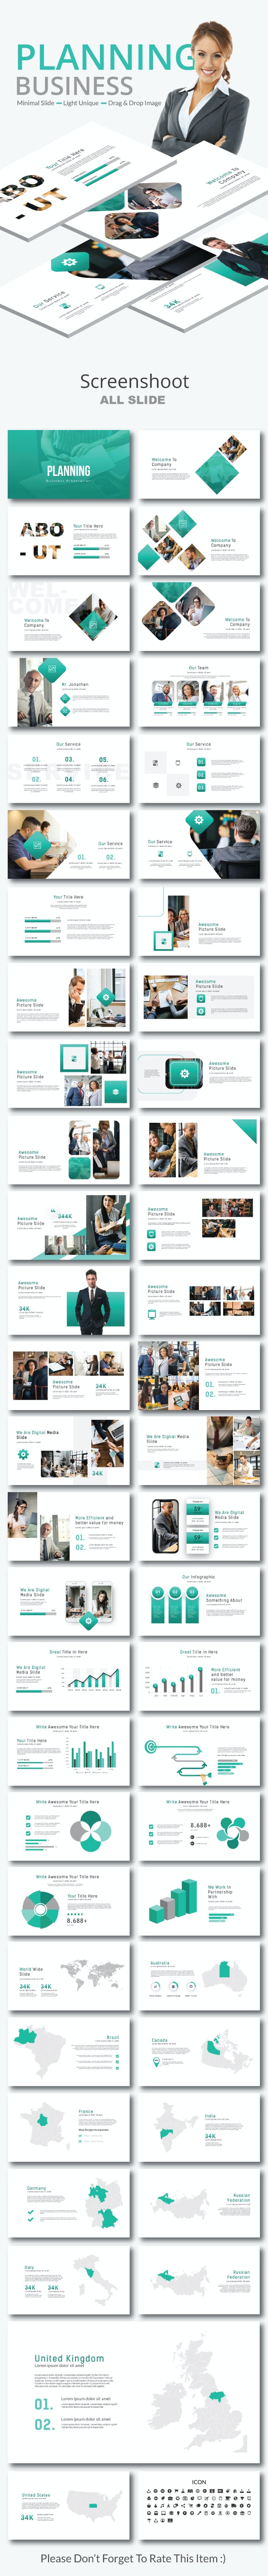 Planning Business Powerpoint - Business PowerPoint Templates